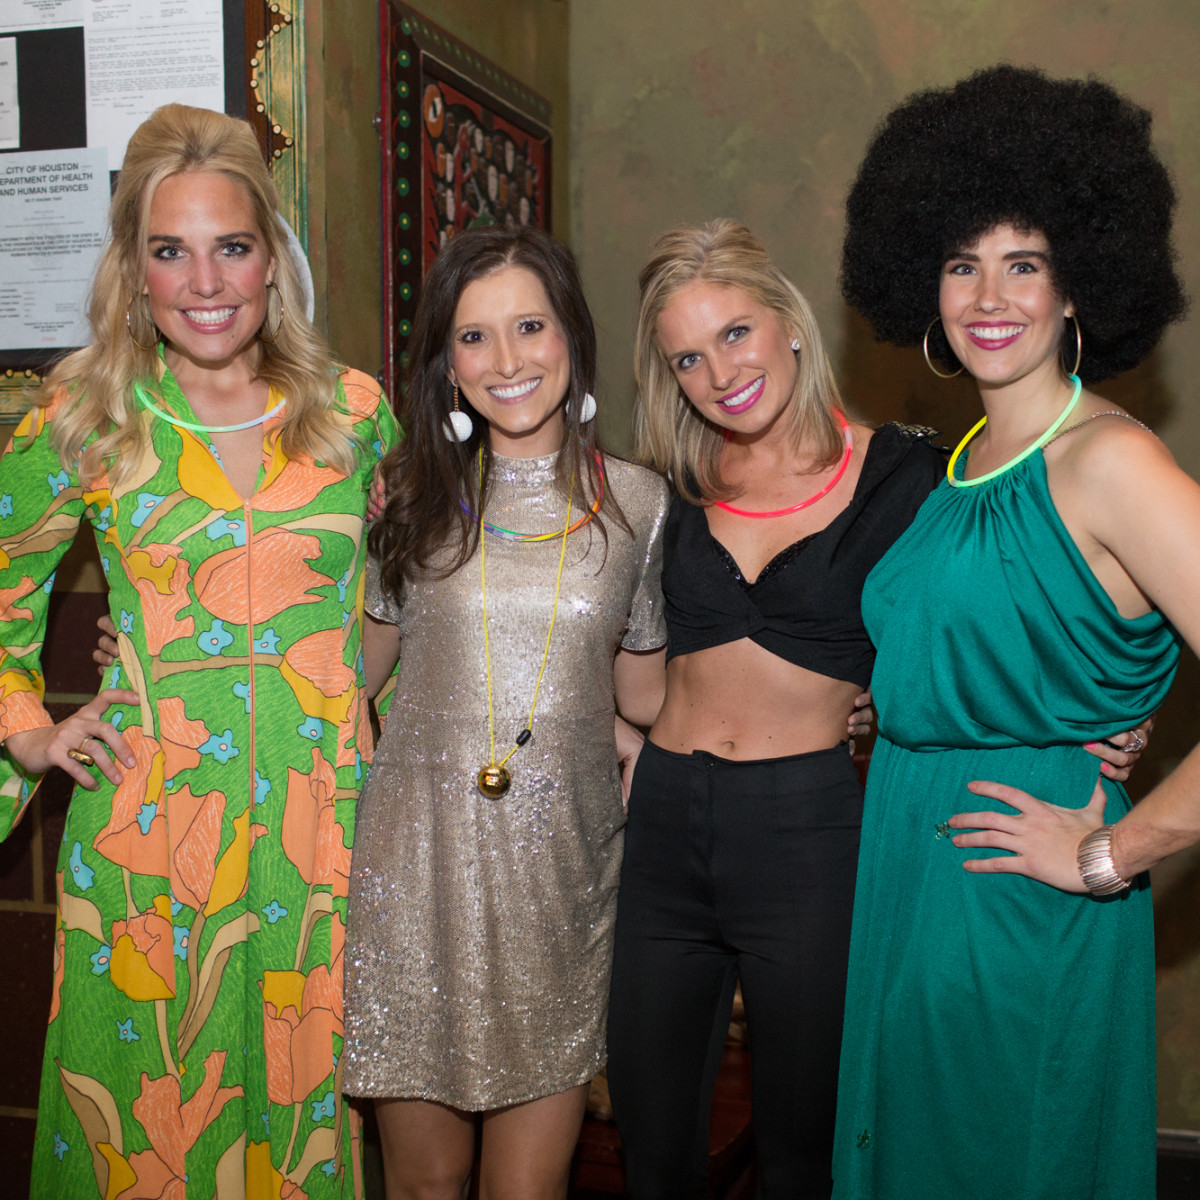 TIRR Foundation gala, Feb. 2016, Helen Hemingway, Alixe Ryan, Kimberly Niehaus, Catherine Bradley